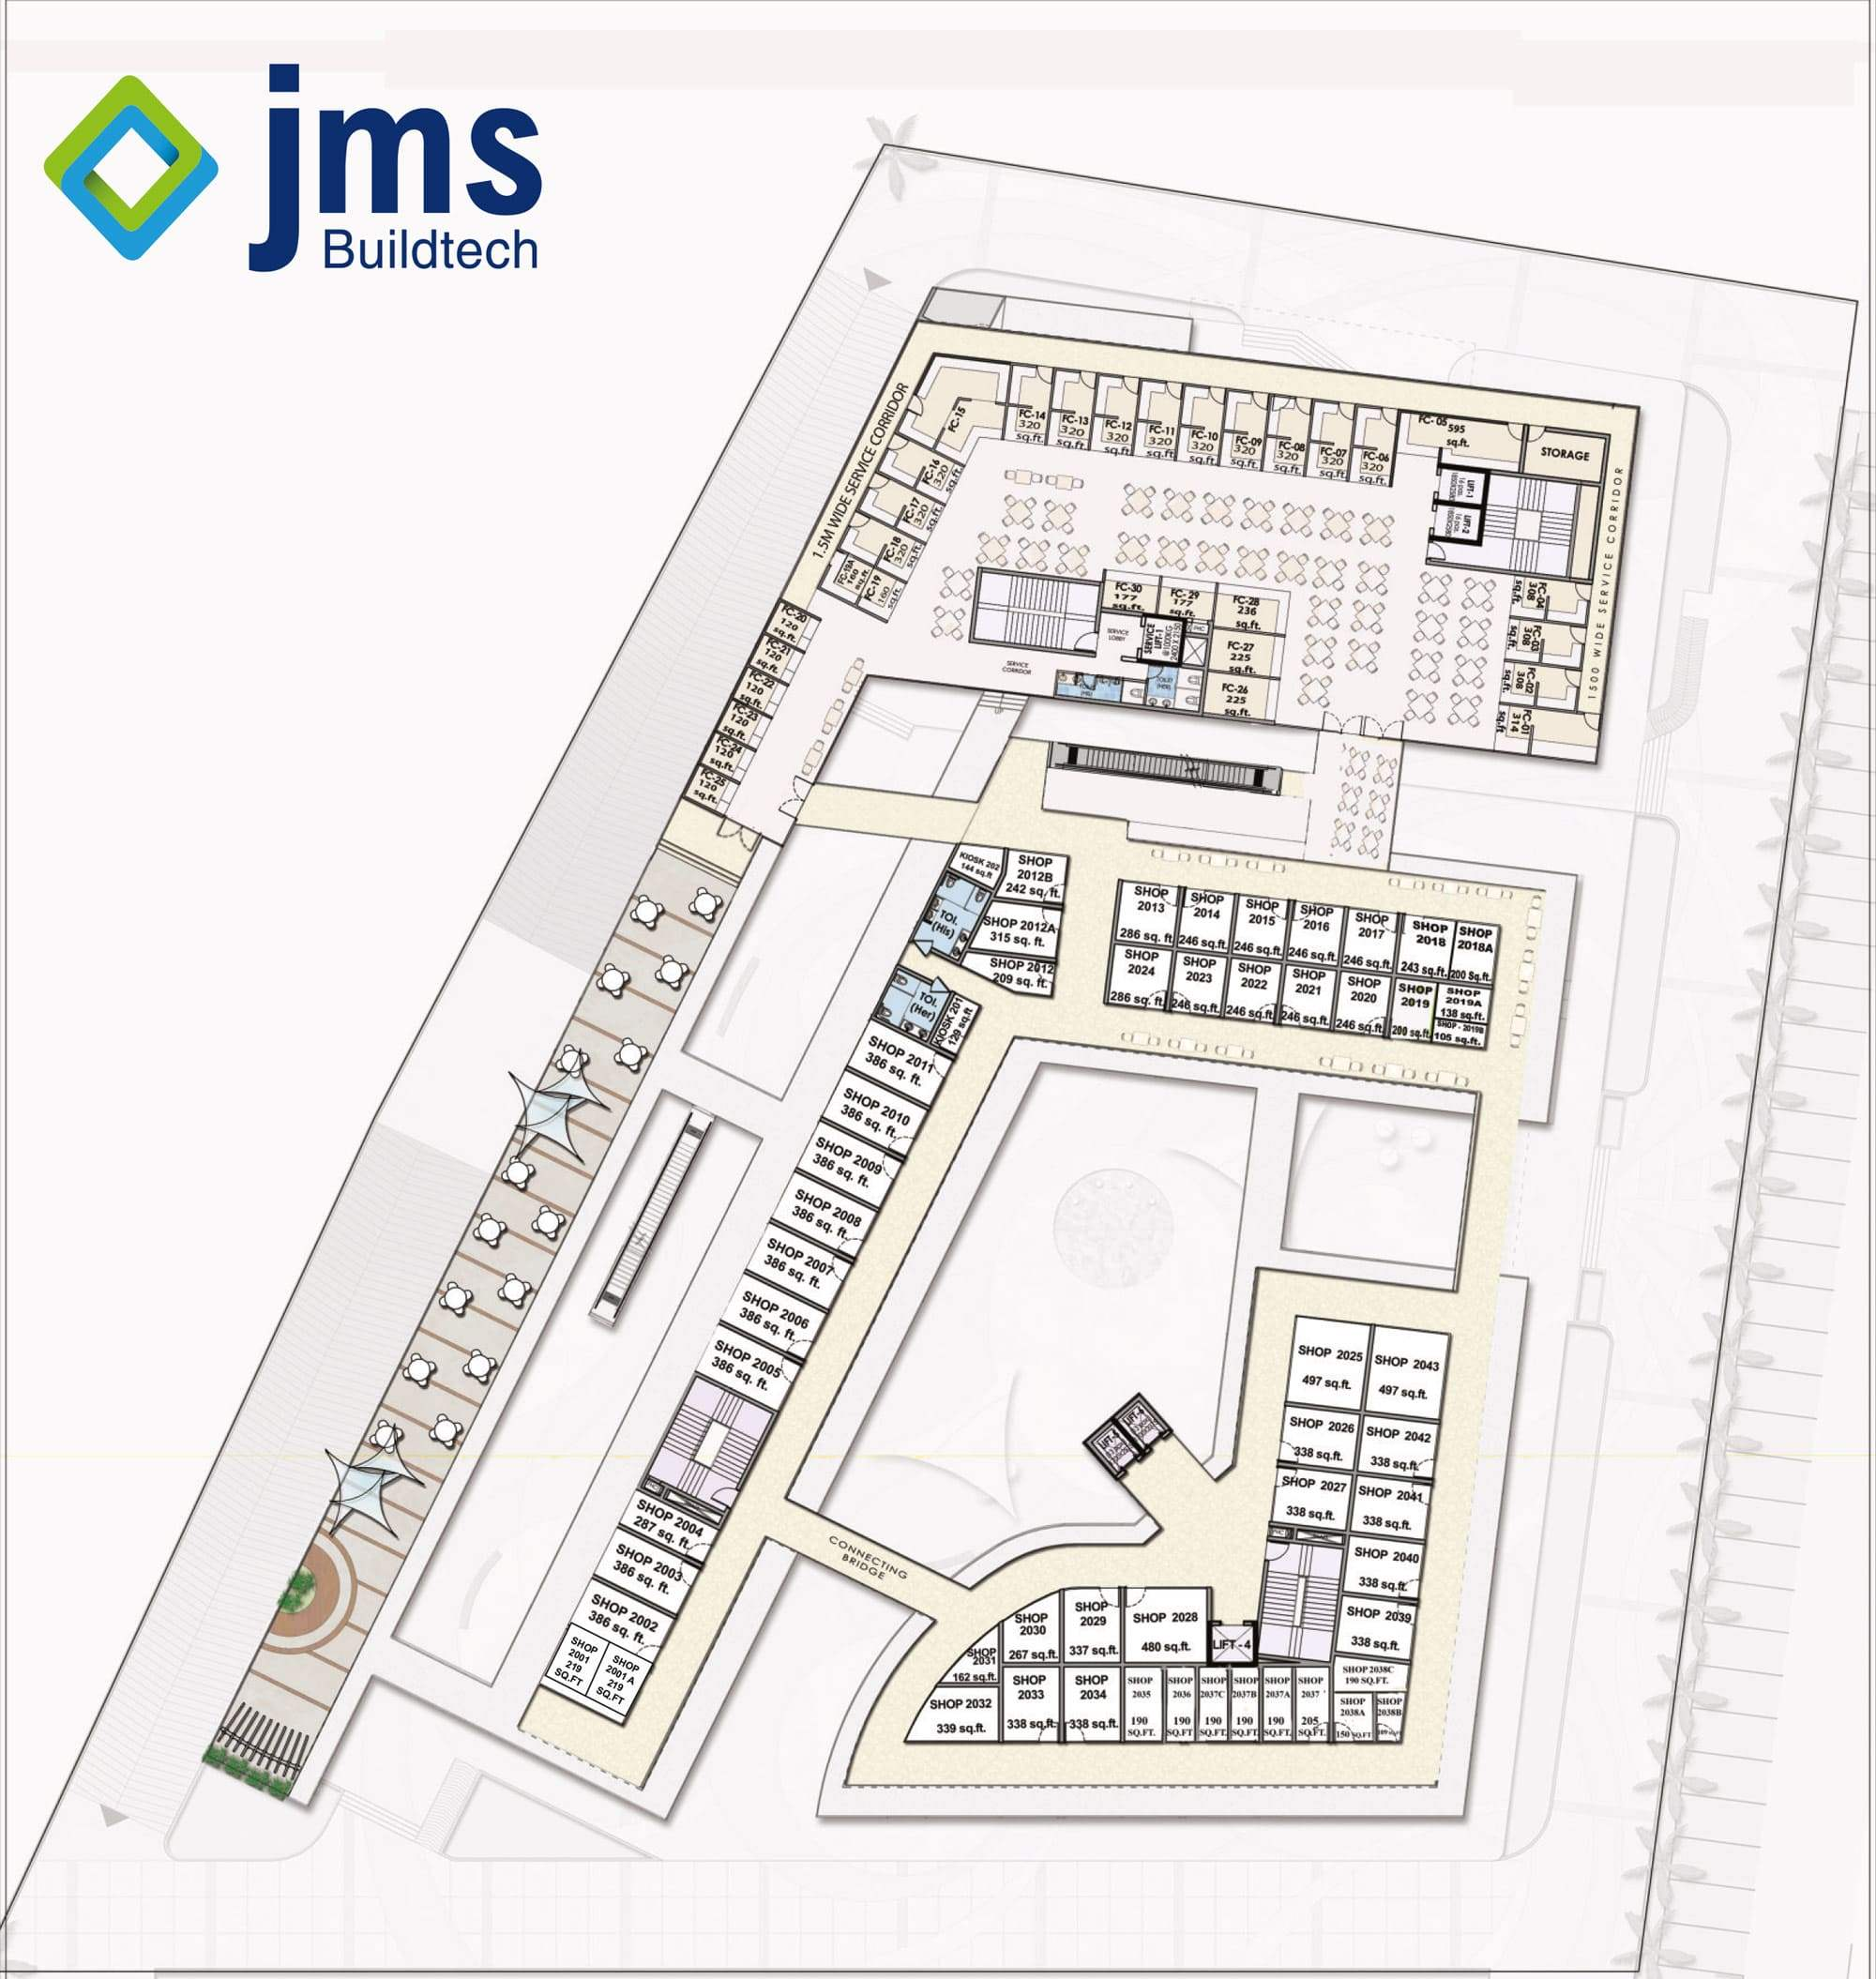 Jms Buildtech commercial project in Sector-93 Gurgaon